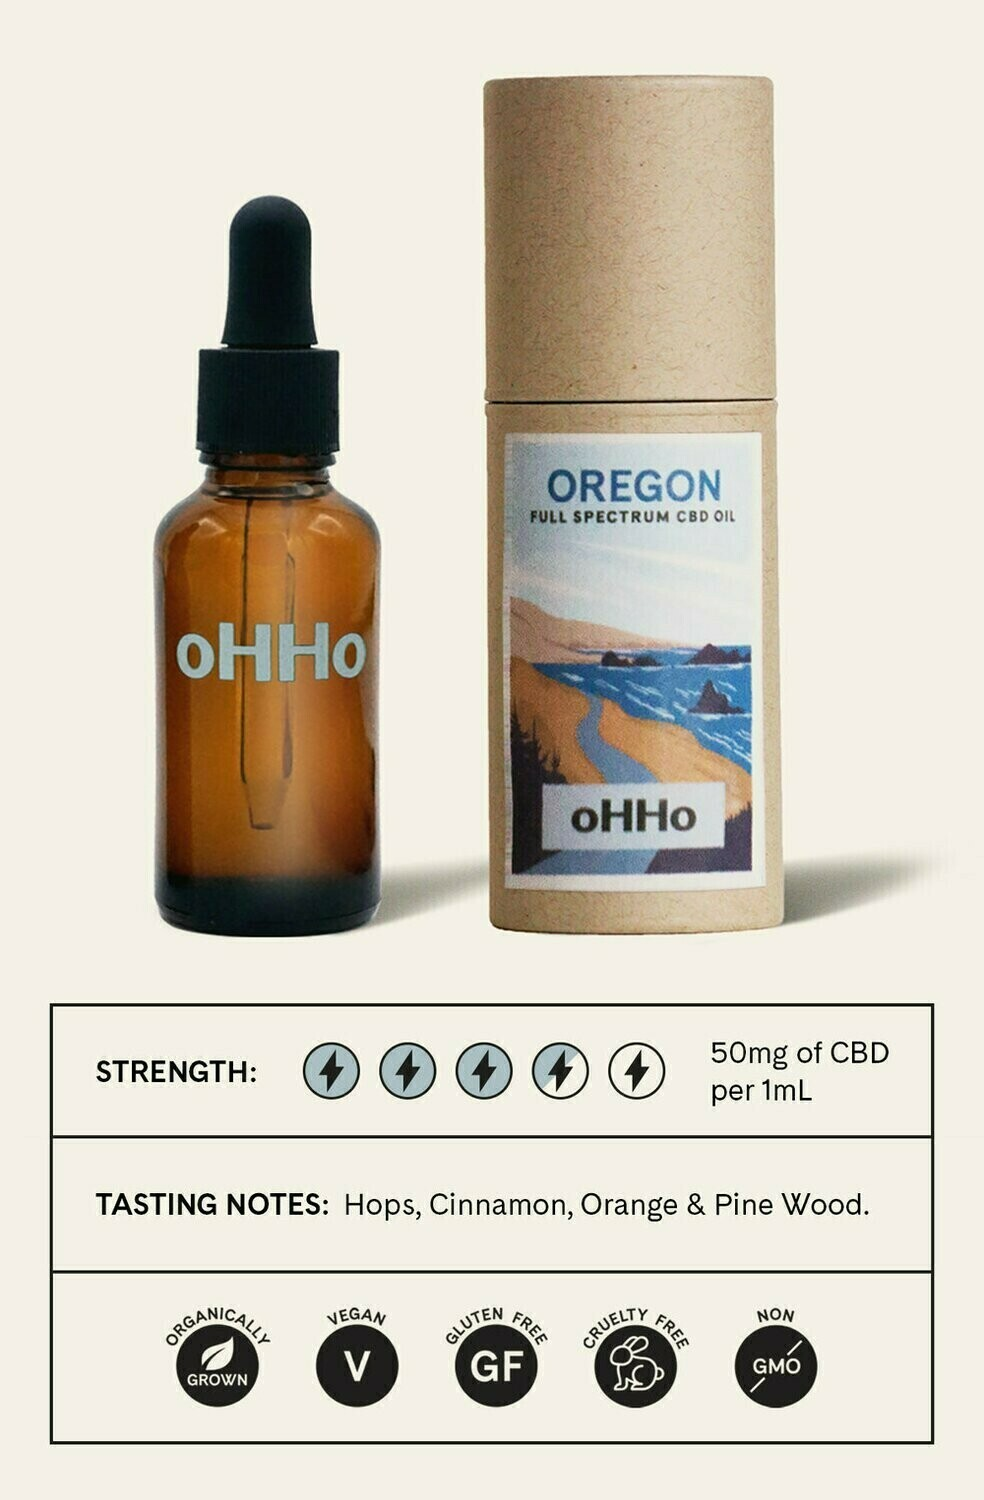 oHHo Oregon Full Spectrum CBD Oil